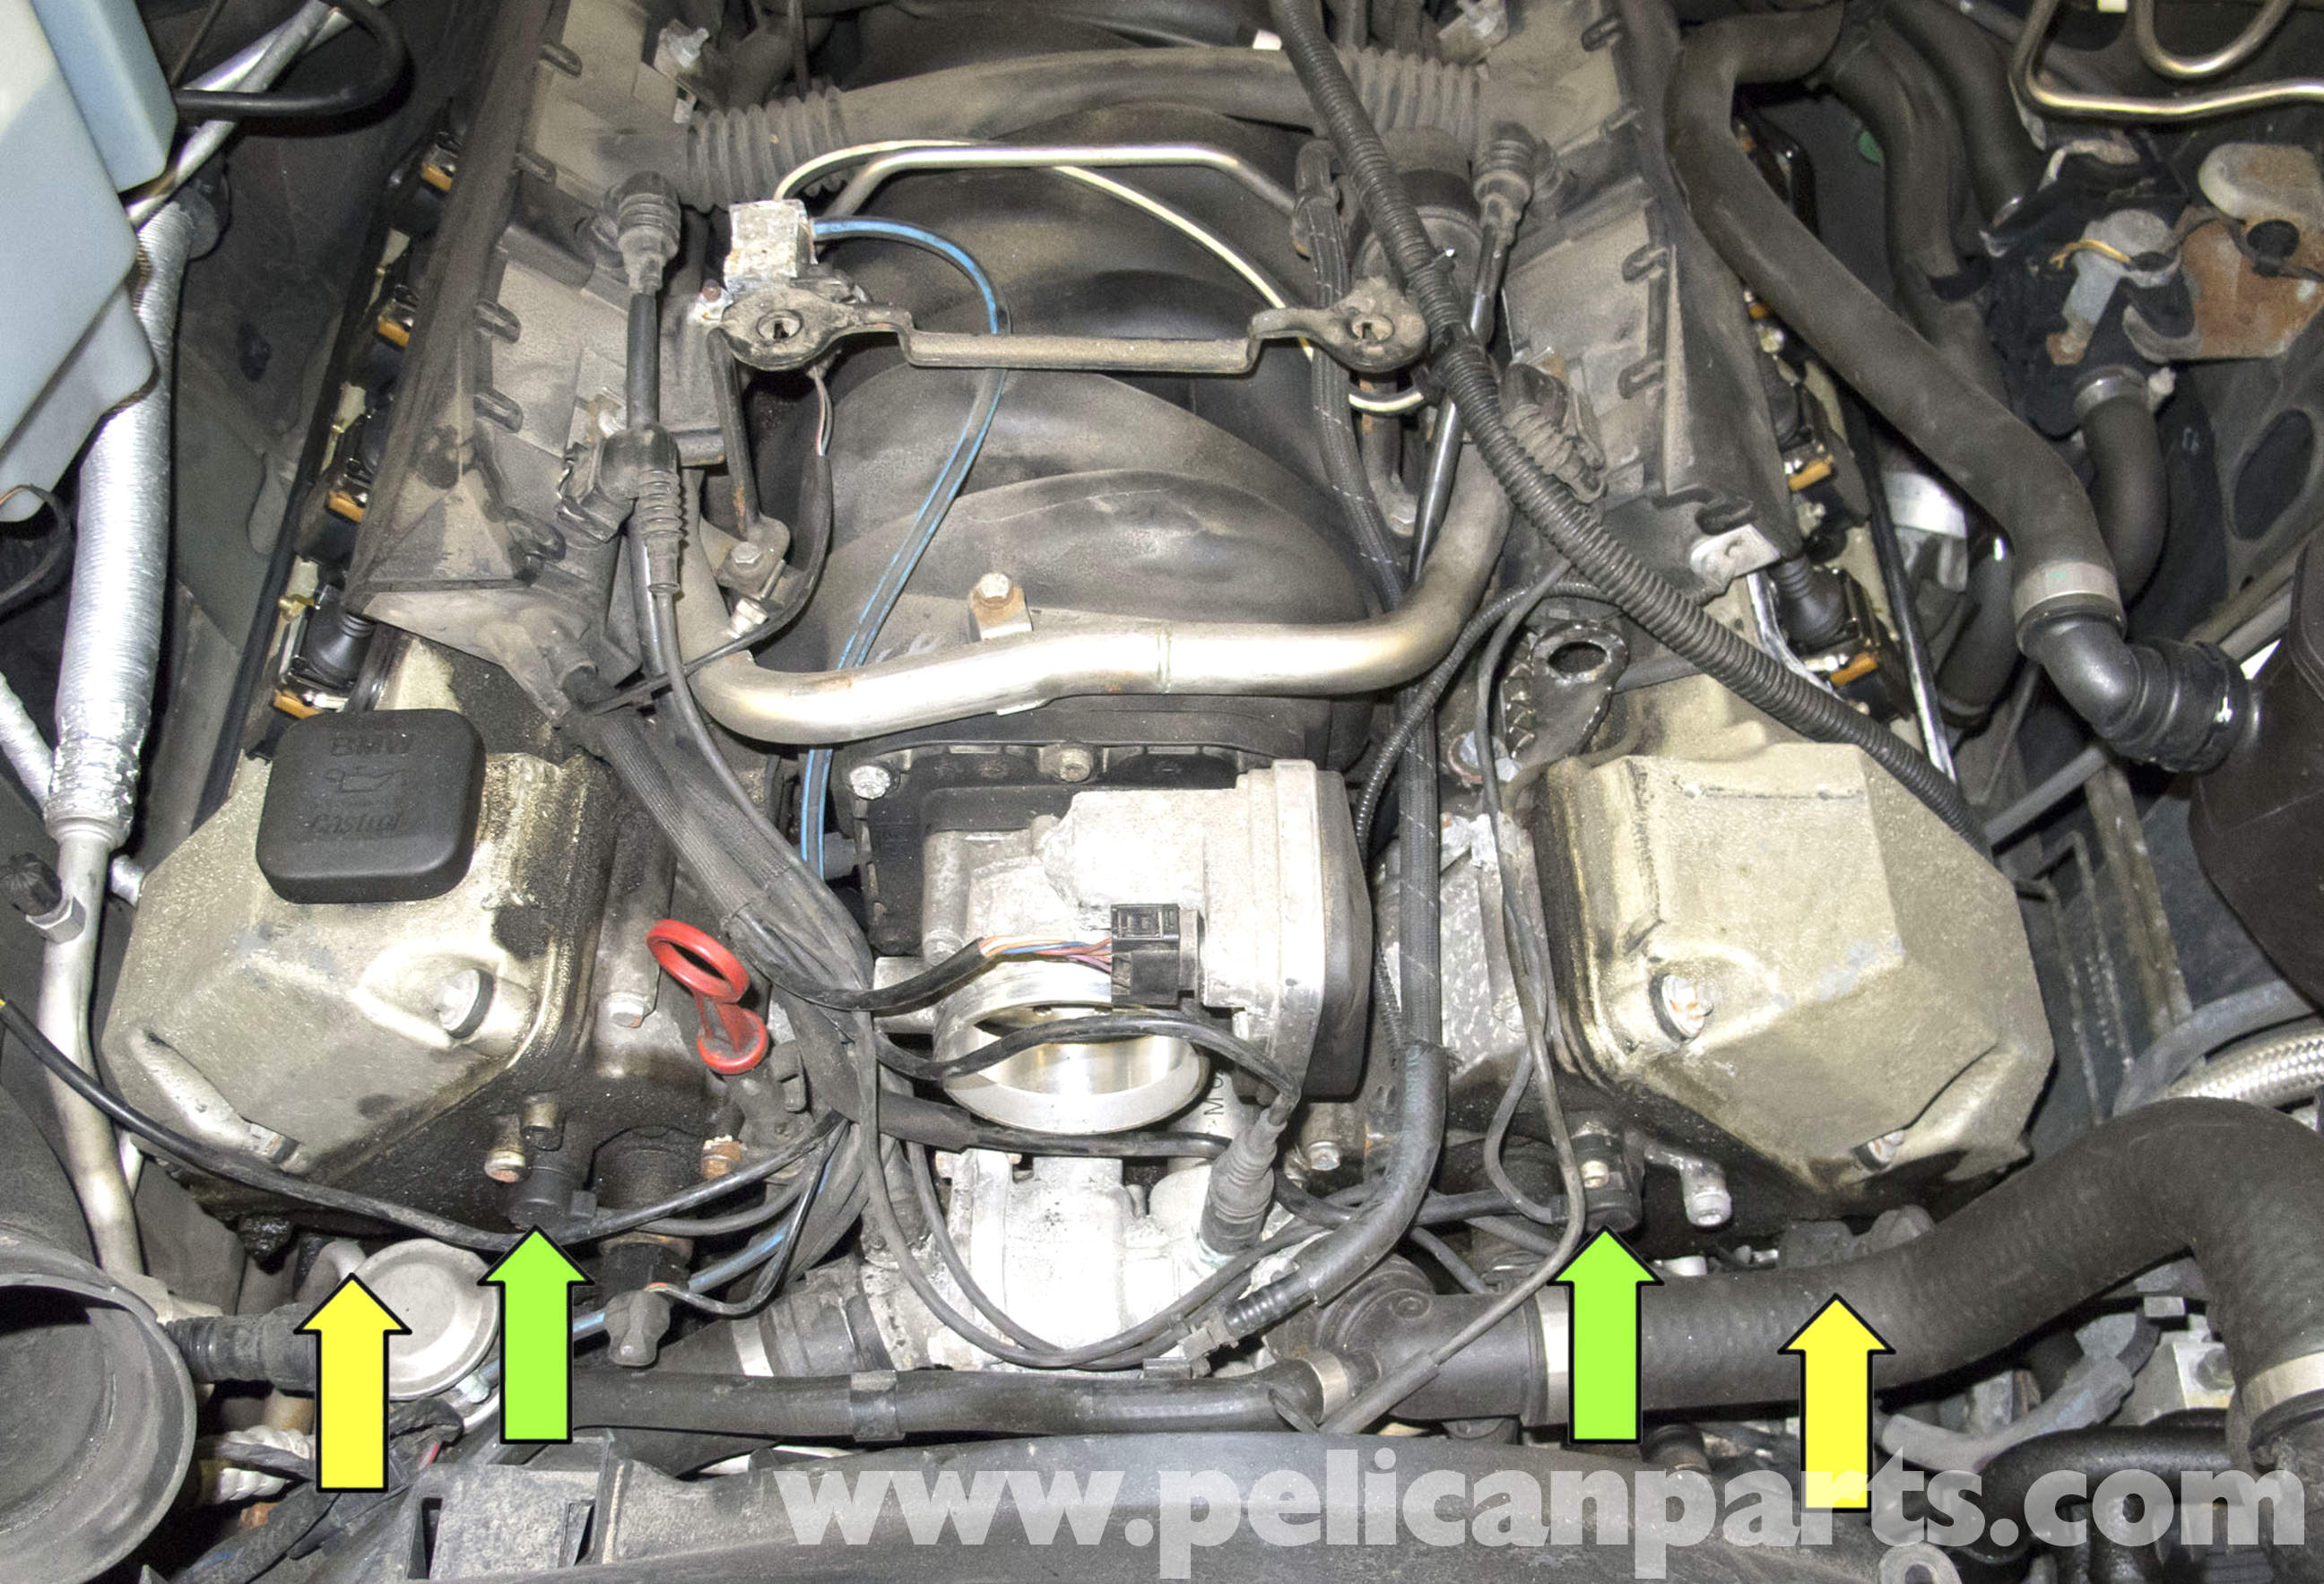 E21 BMW 3 Series besides BMW Fuse Box Diagram in addition BMW E46 Fuse Box Diagram besides Electrical Legend Symbols moreover 2004 BMW 325I Radiator Replacement. on bmw e46 wiring diagram